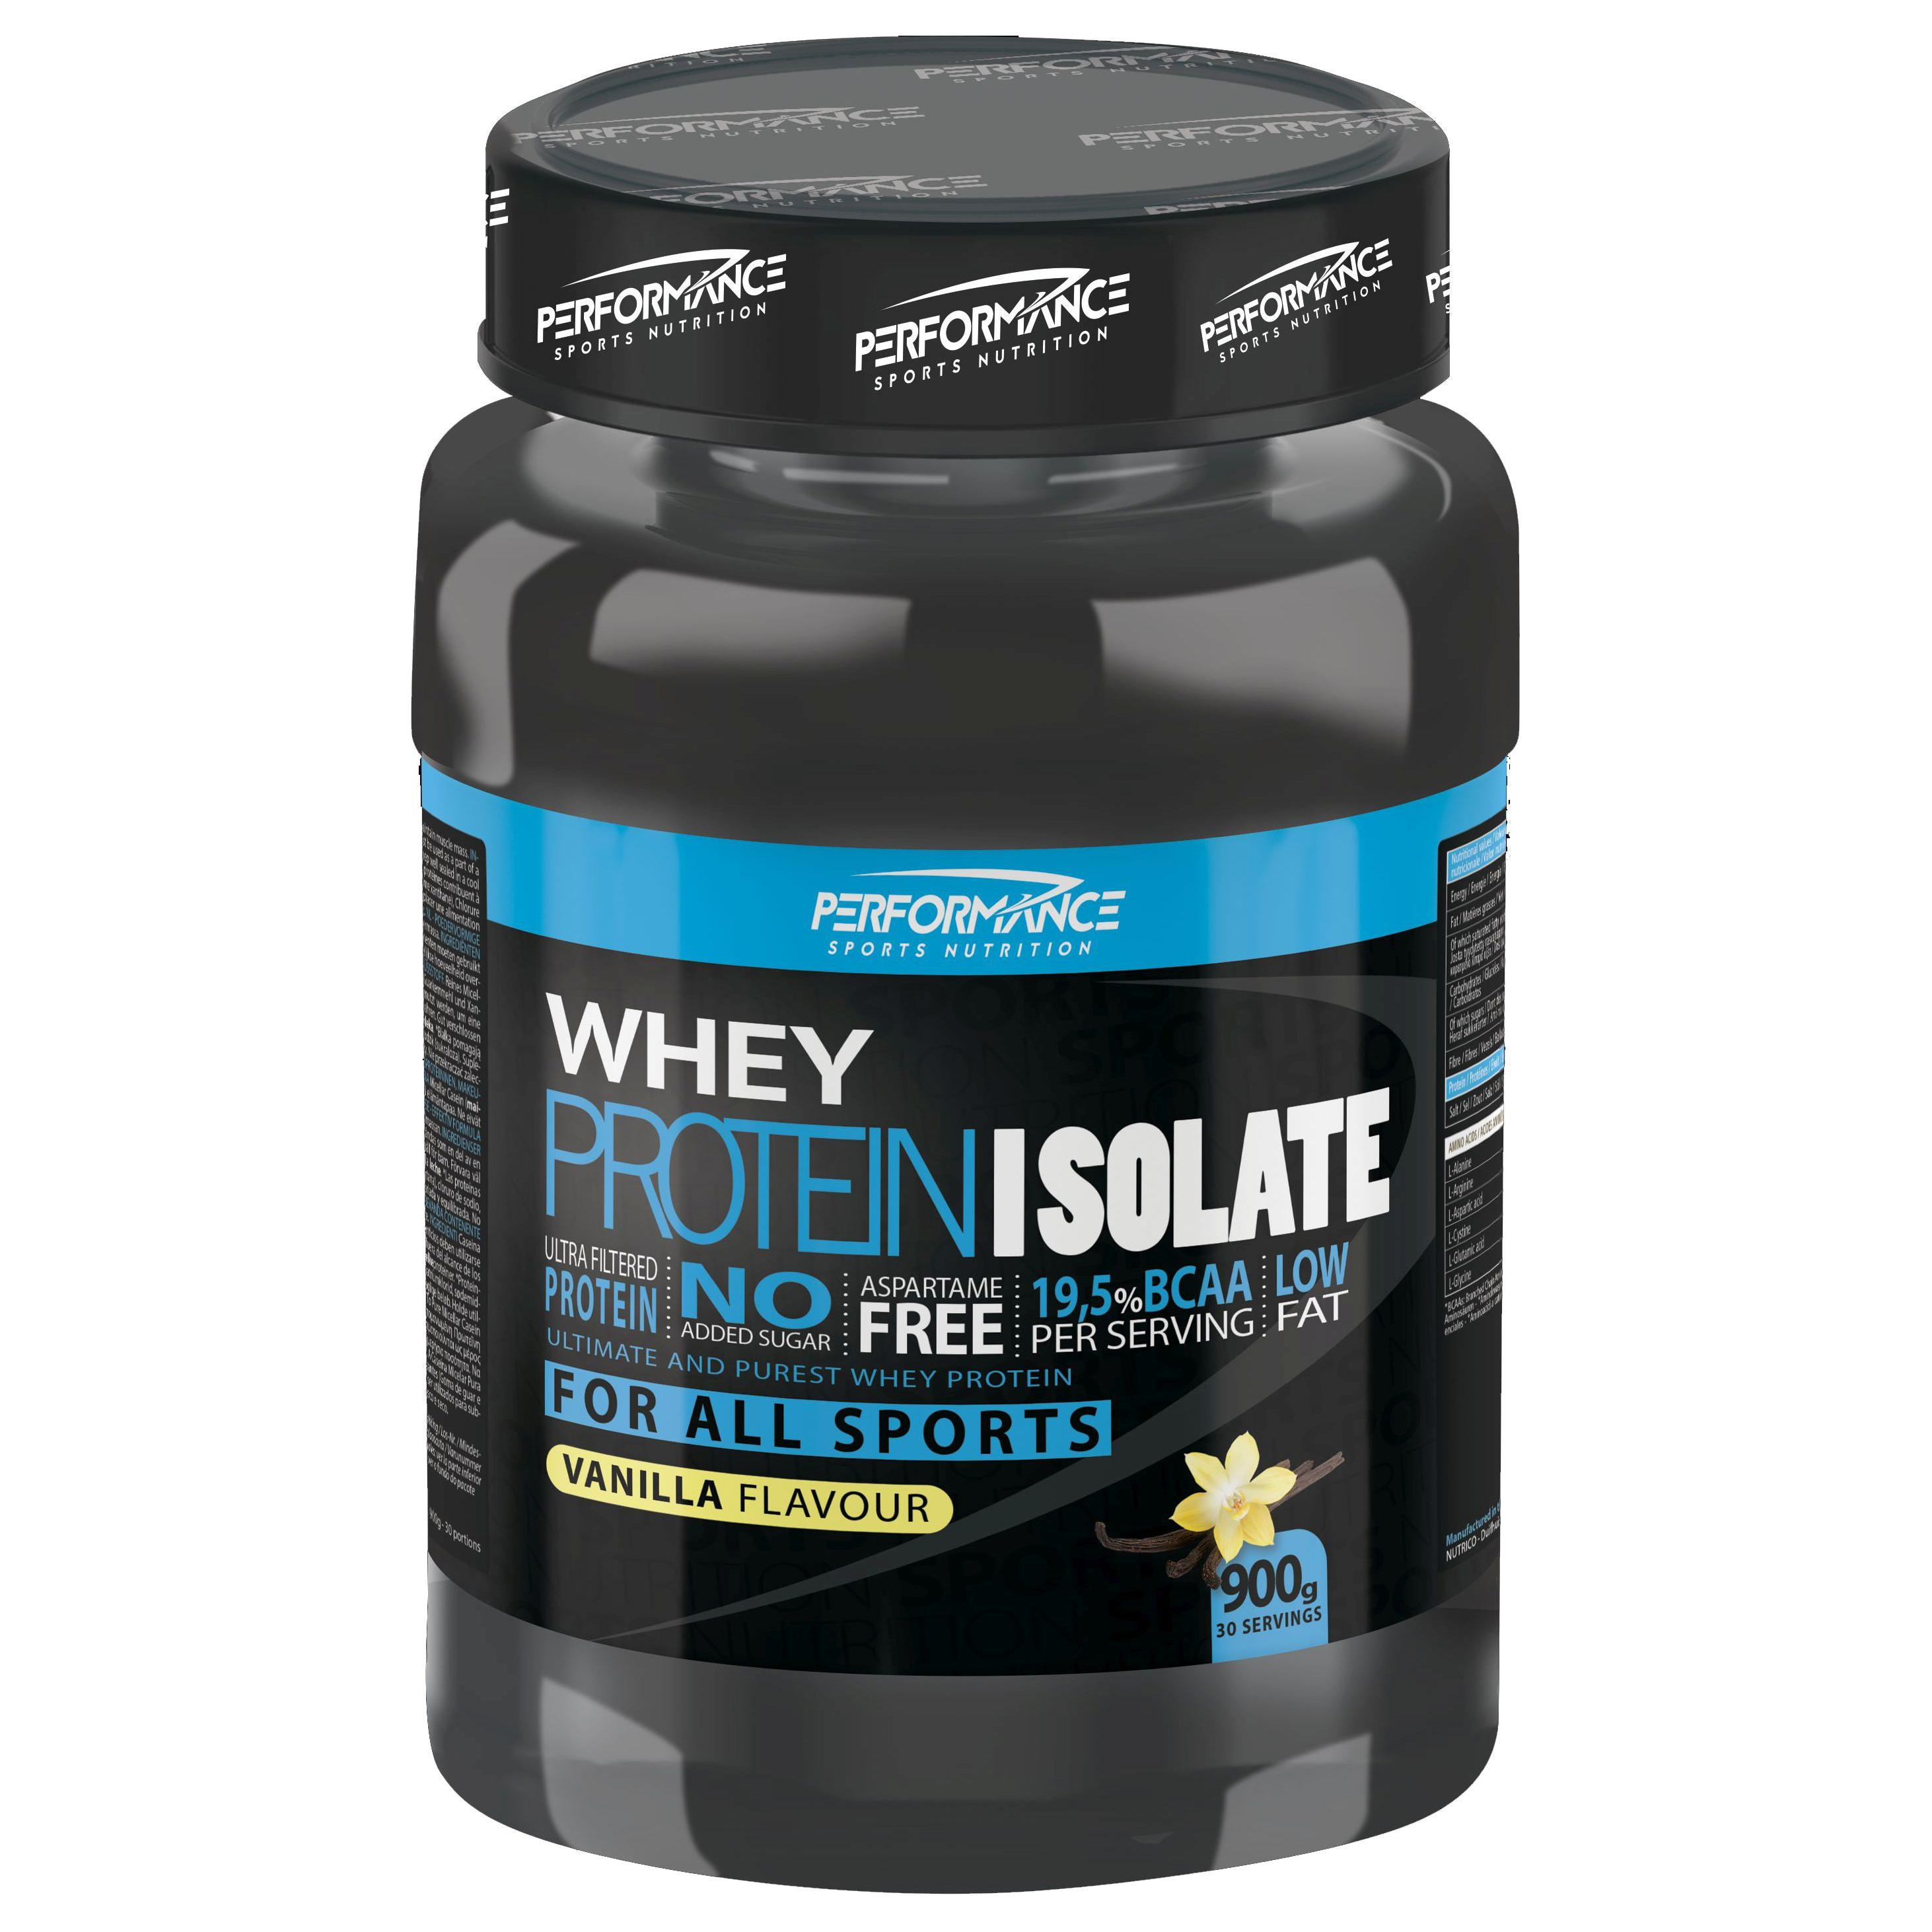 Performance Whey Protein Isolate vanille